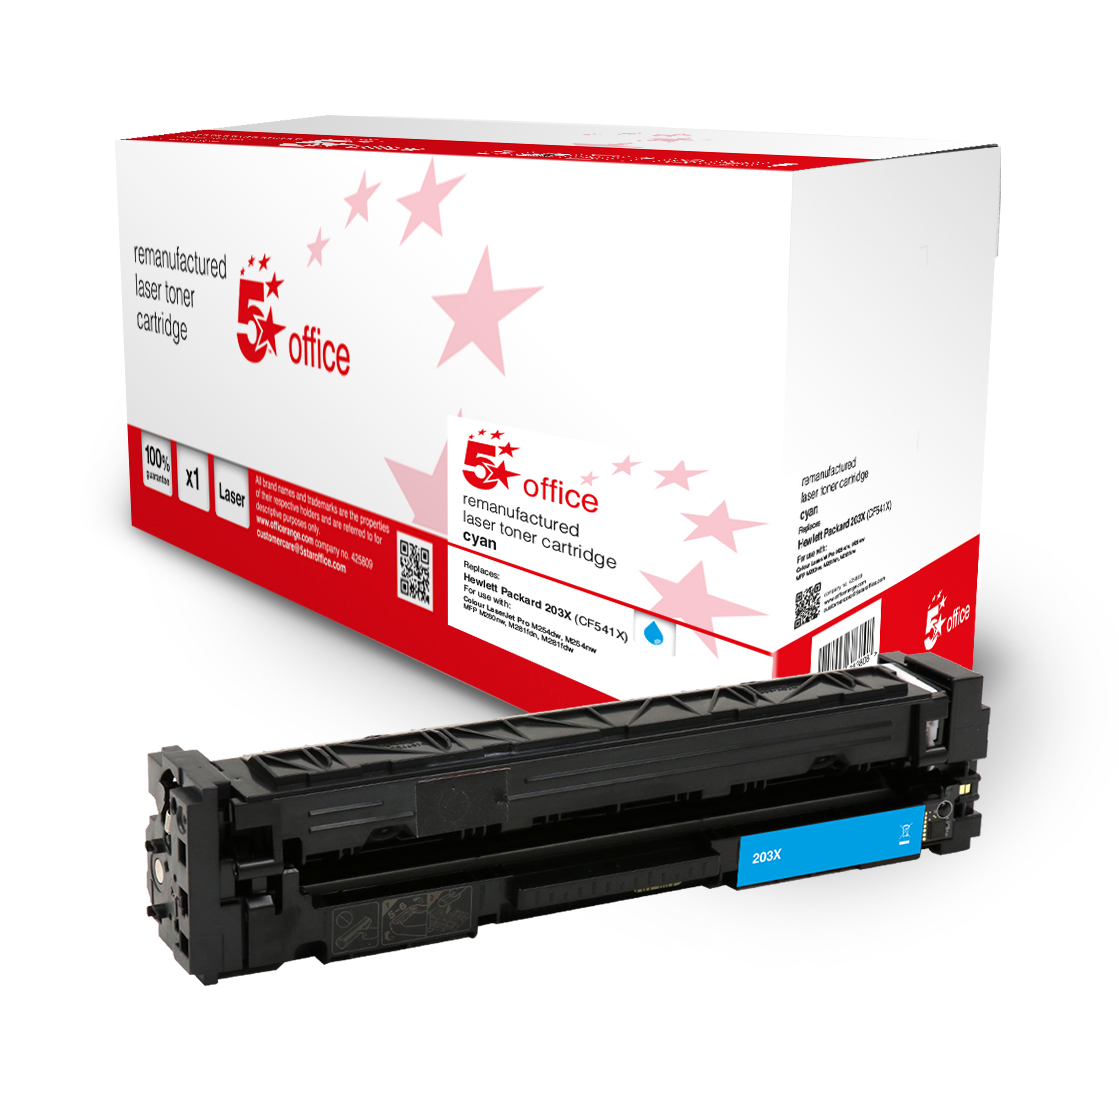 5 Star Office Remanufactured Toner Cartridge Page Life Cyan 2500pp HP 203X CF541X Alternative